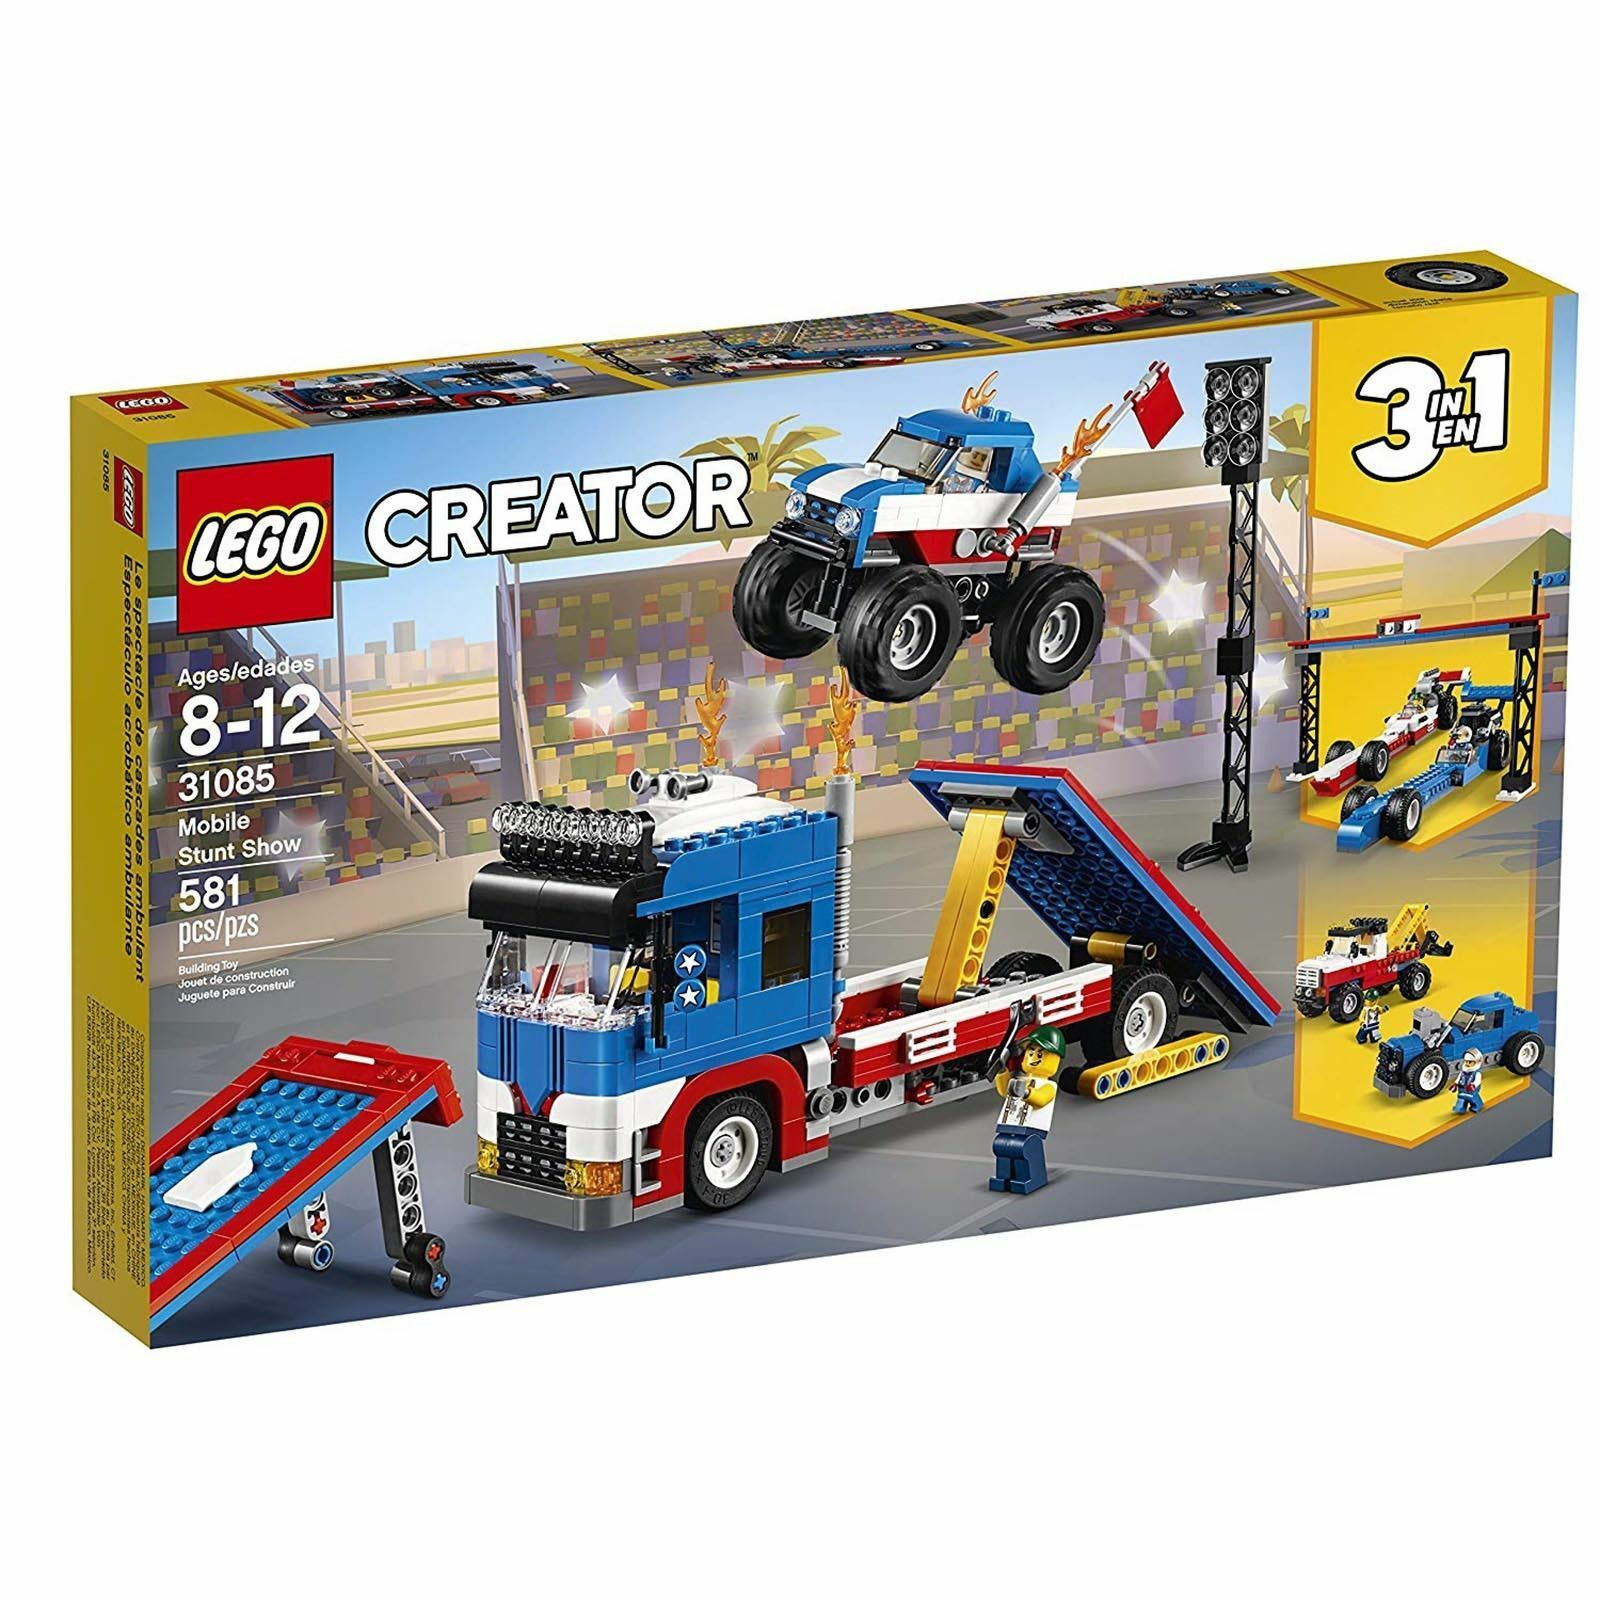 LEGO® Creator Mobile Stunt Show Building Set 31085 NEW Toys